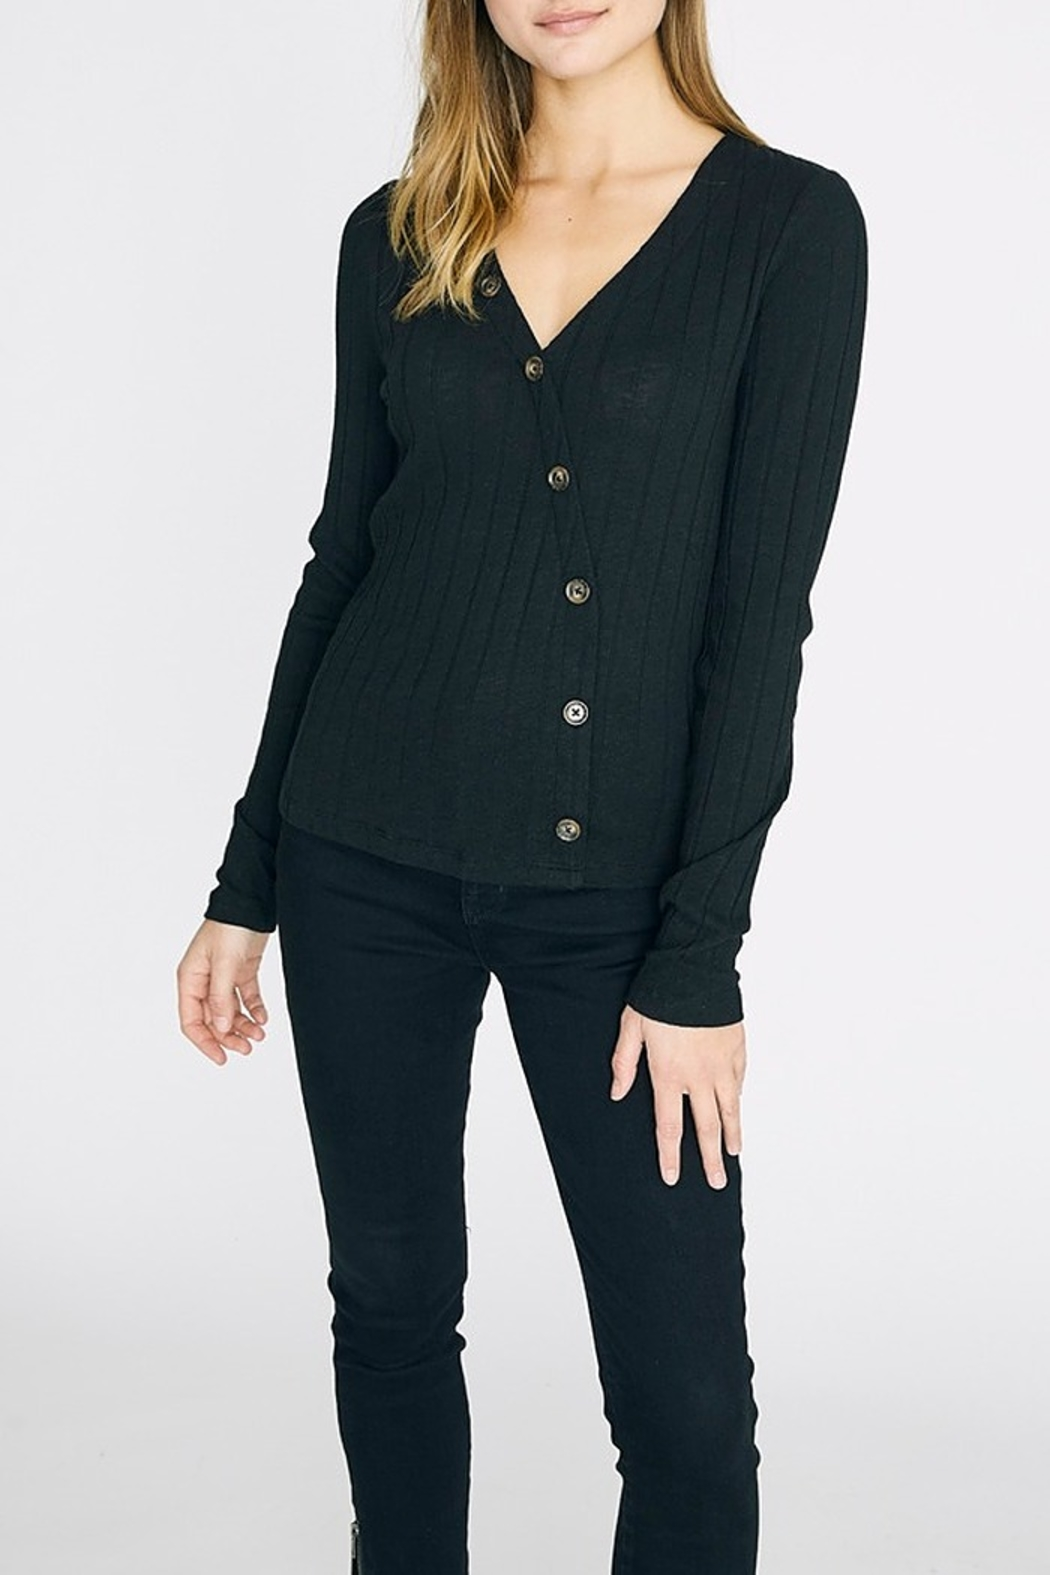 Sanctuary Angle-Button Black Top - Front Cropped Image